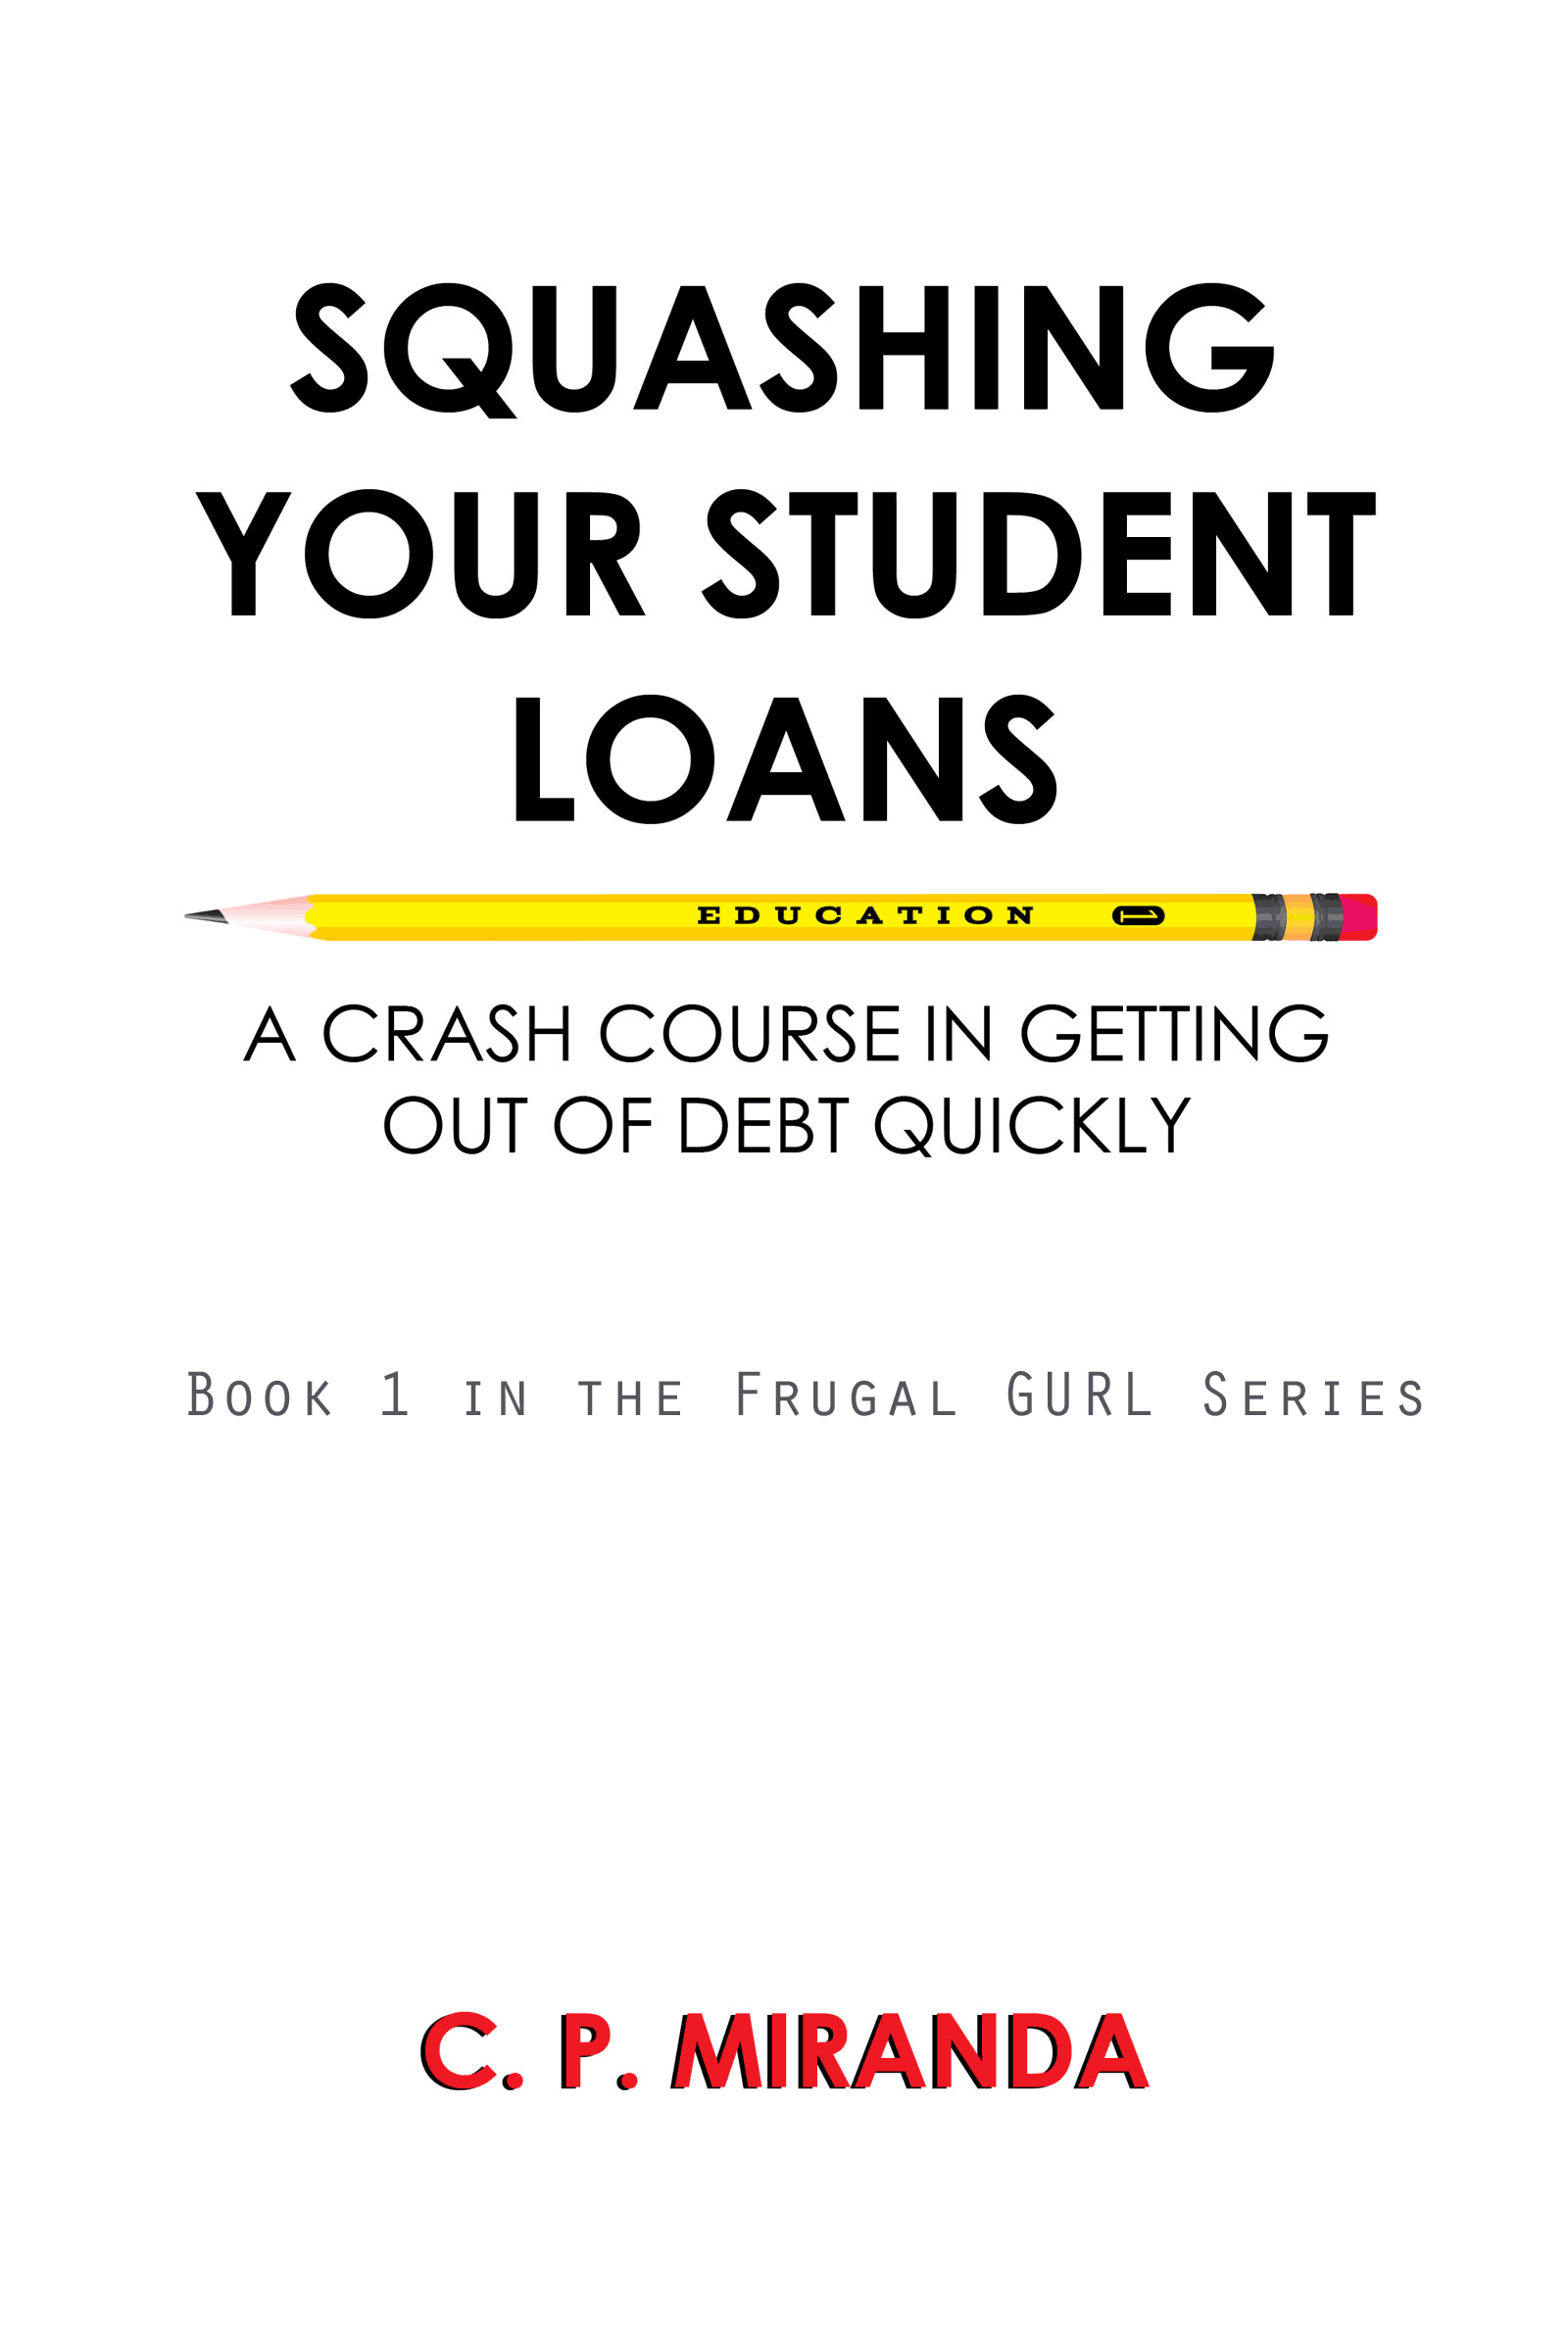 Squashing Your Student Loans